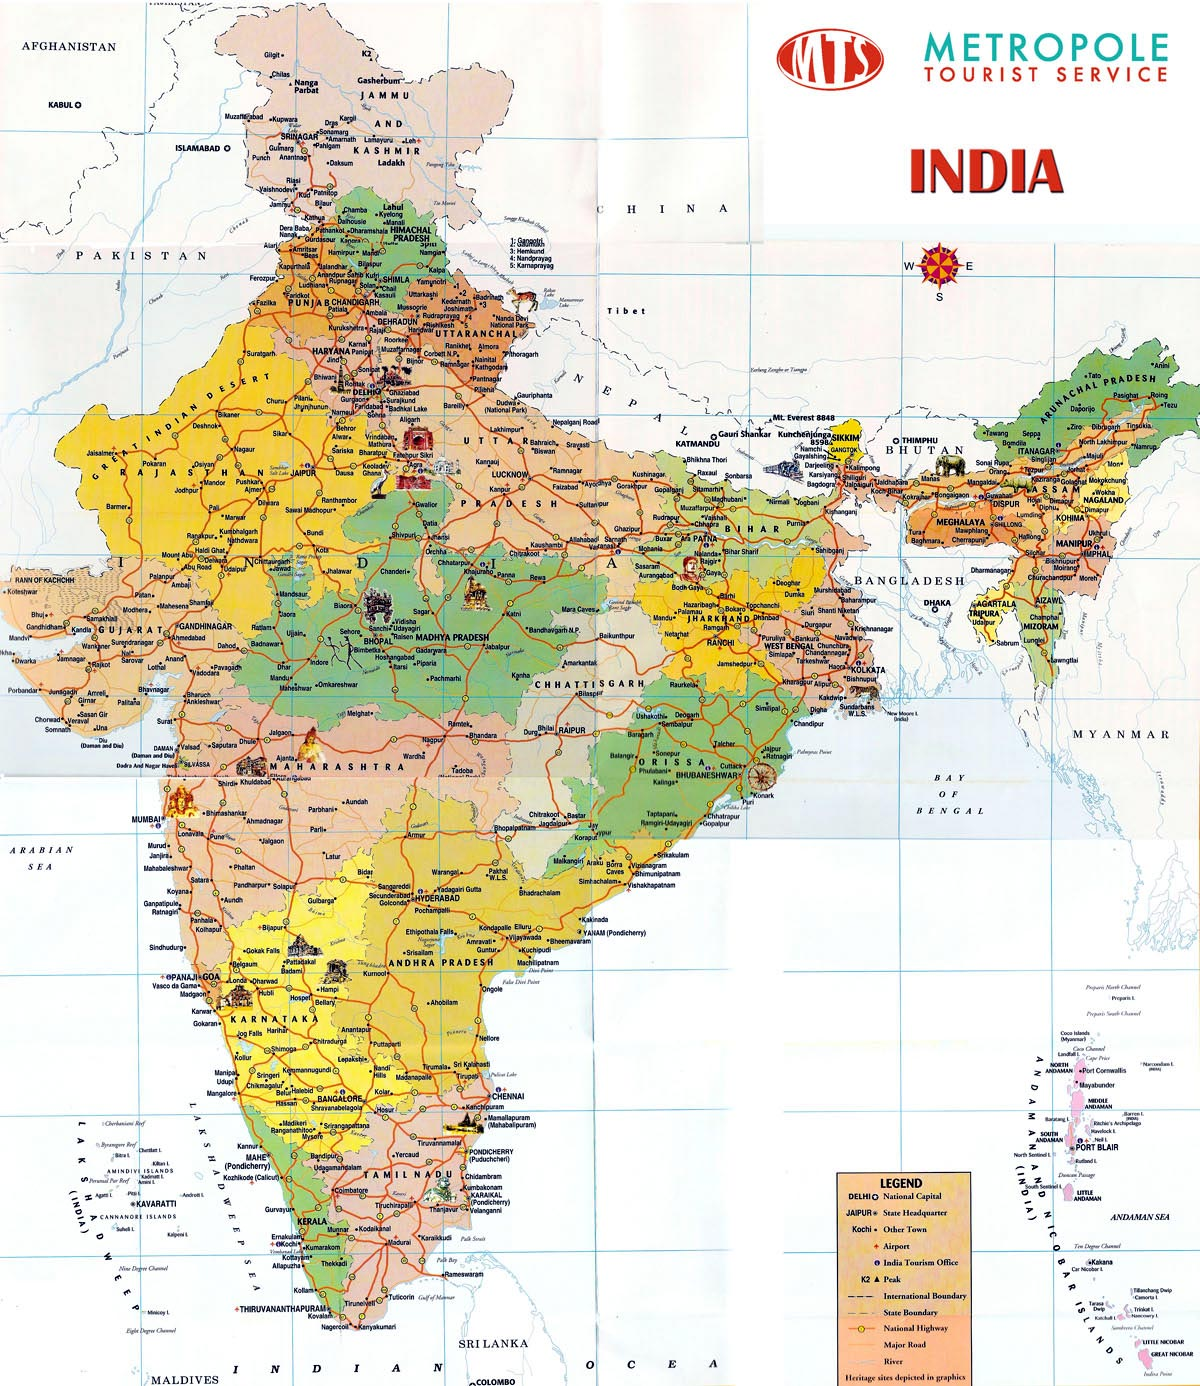 India Maps | Printable Maps of India for Download on india map 1900, canada map states and capitals, india map physical features mountain, cambodia map states and capitals, union territories of india and their capitals, india language map, india map states provinces, south america map states and capitals, india states list, india and south asia physical map, india fertility rate by state, spain map states and capitals, map with capitals, india map with states, india map outline, the united states map states and capitals, india map with cities, india language tamil, india and its states, mexico map states and capitals,